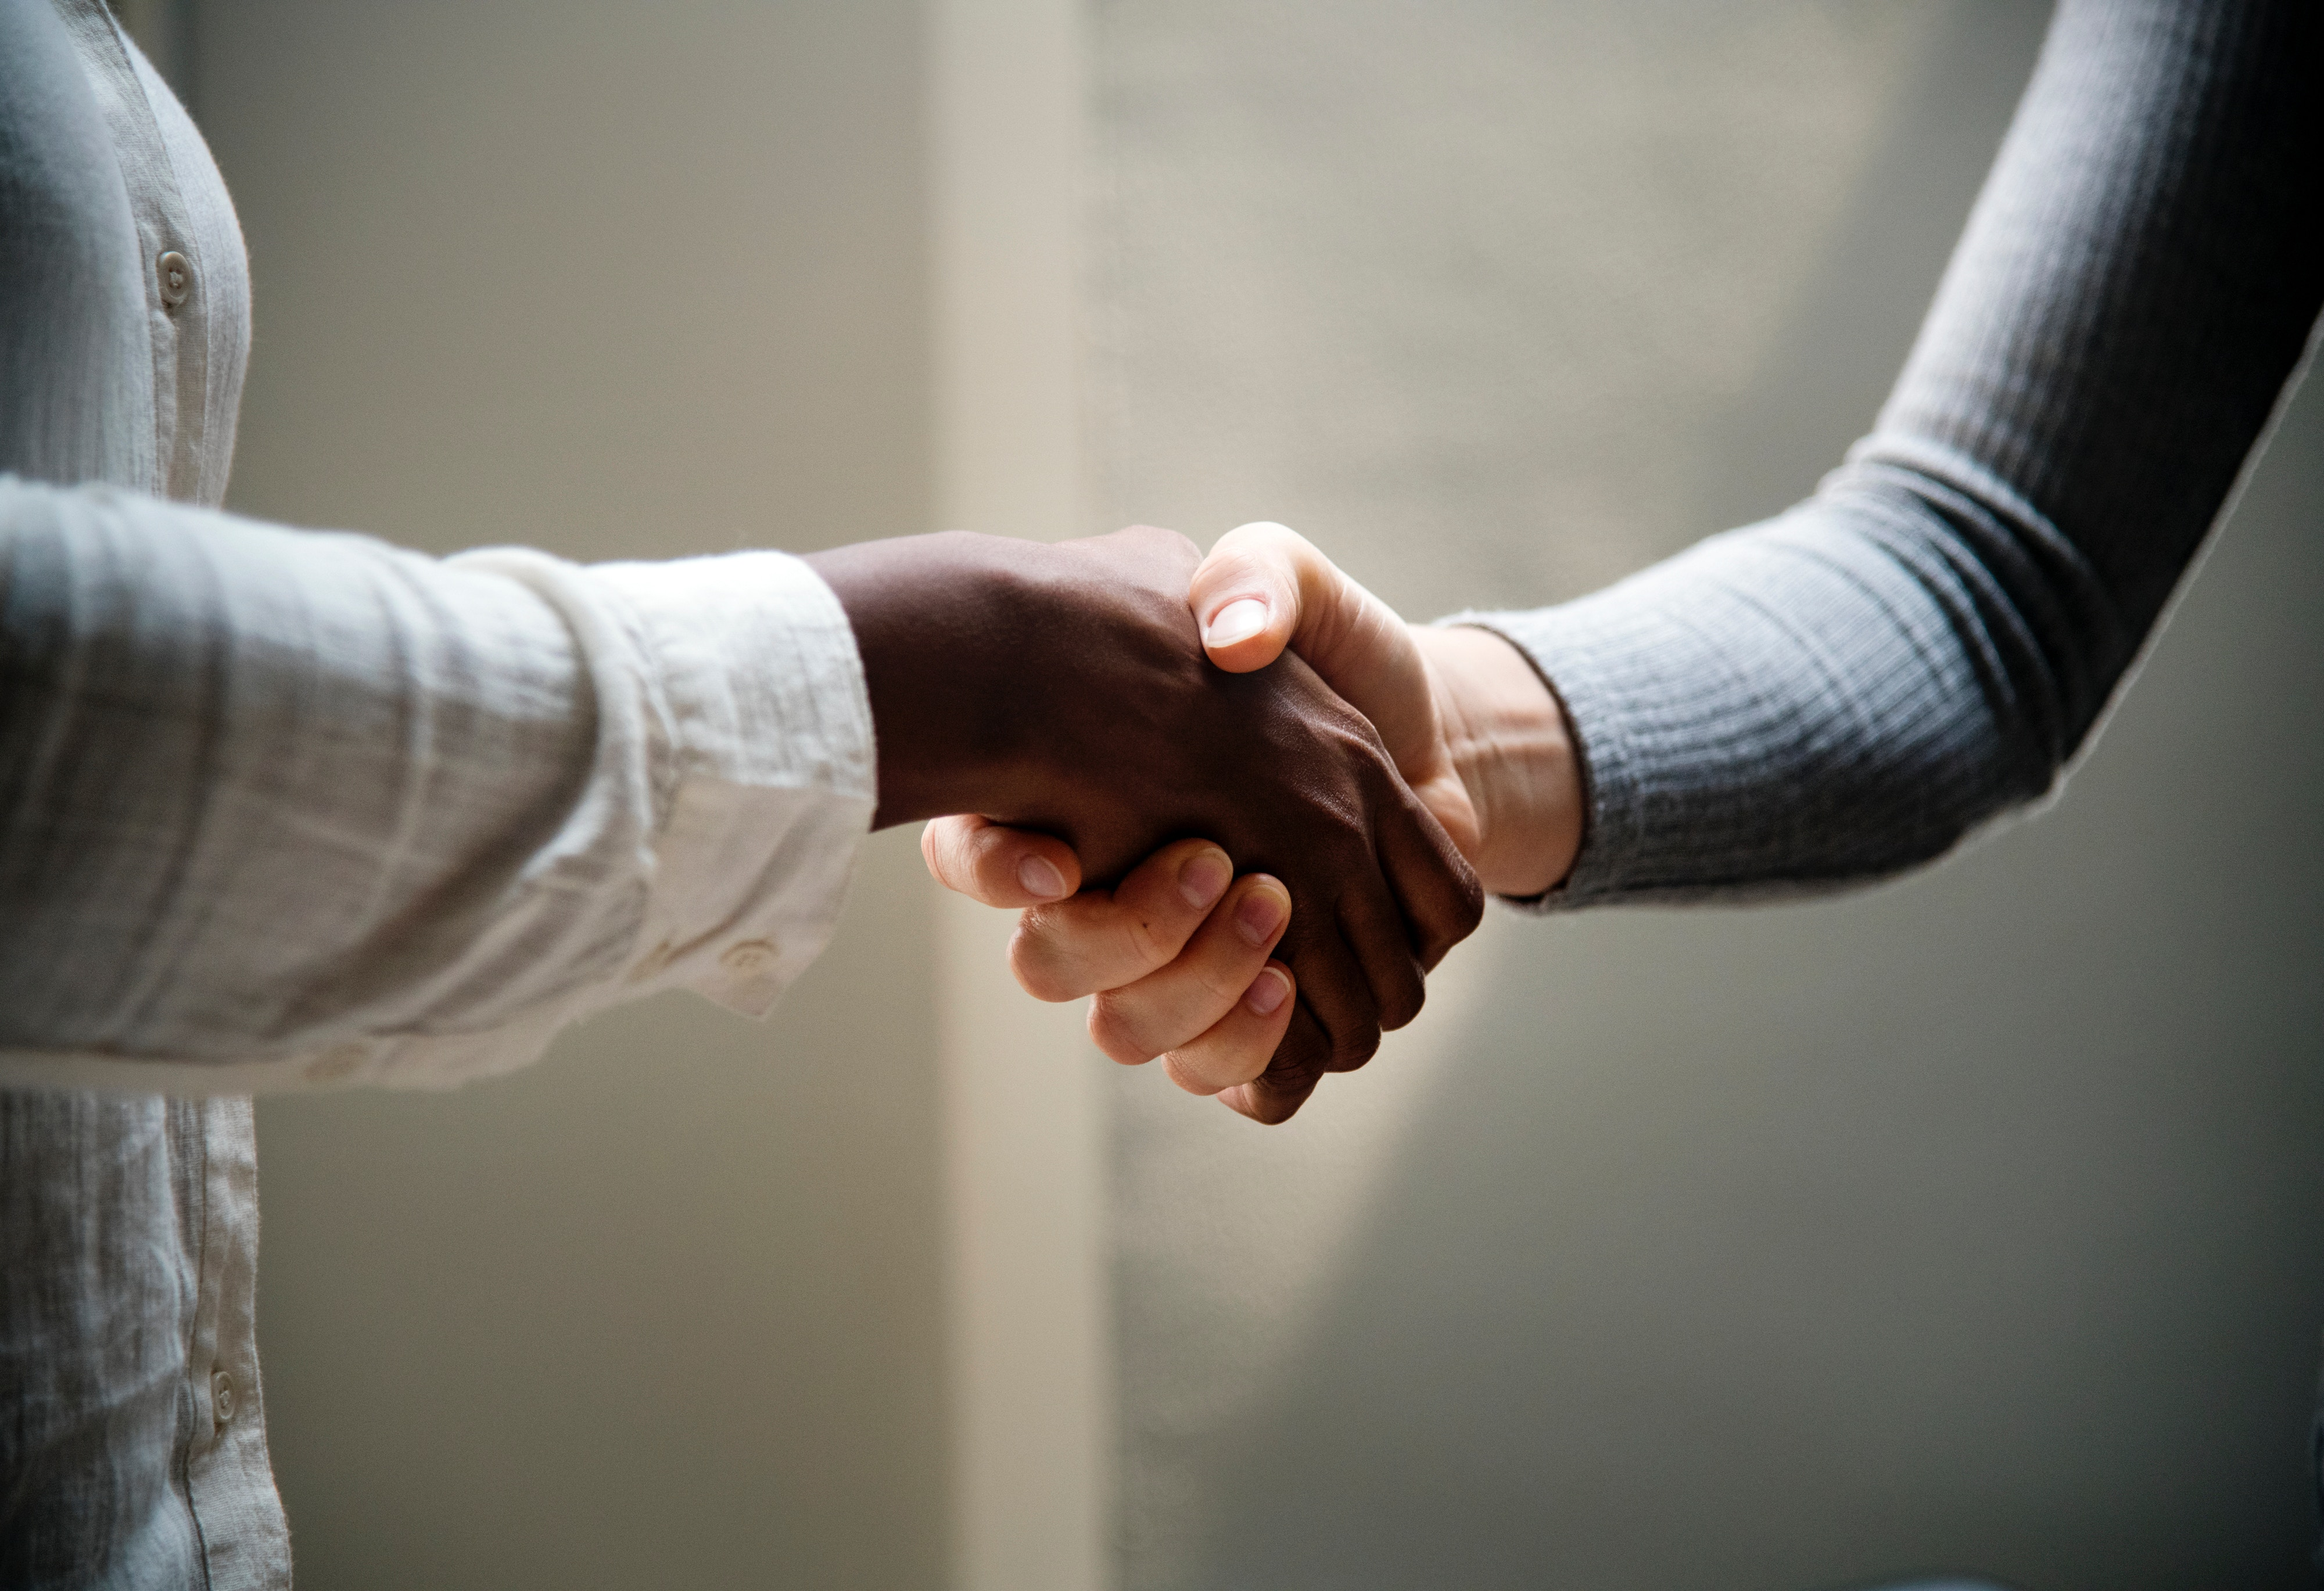 Photograph of two people shaking hands. Both individuals are only shown from hand to elbow.